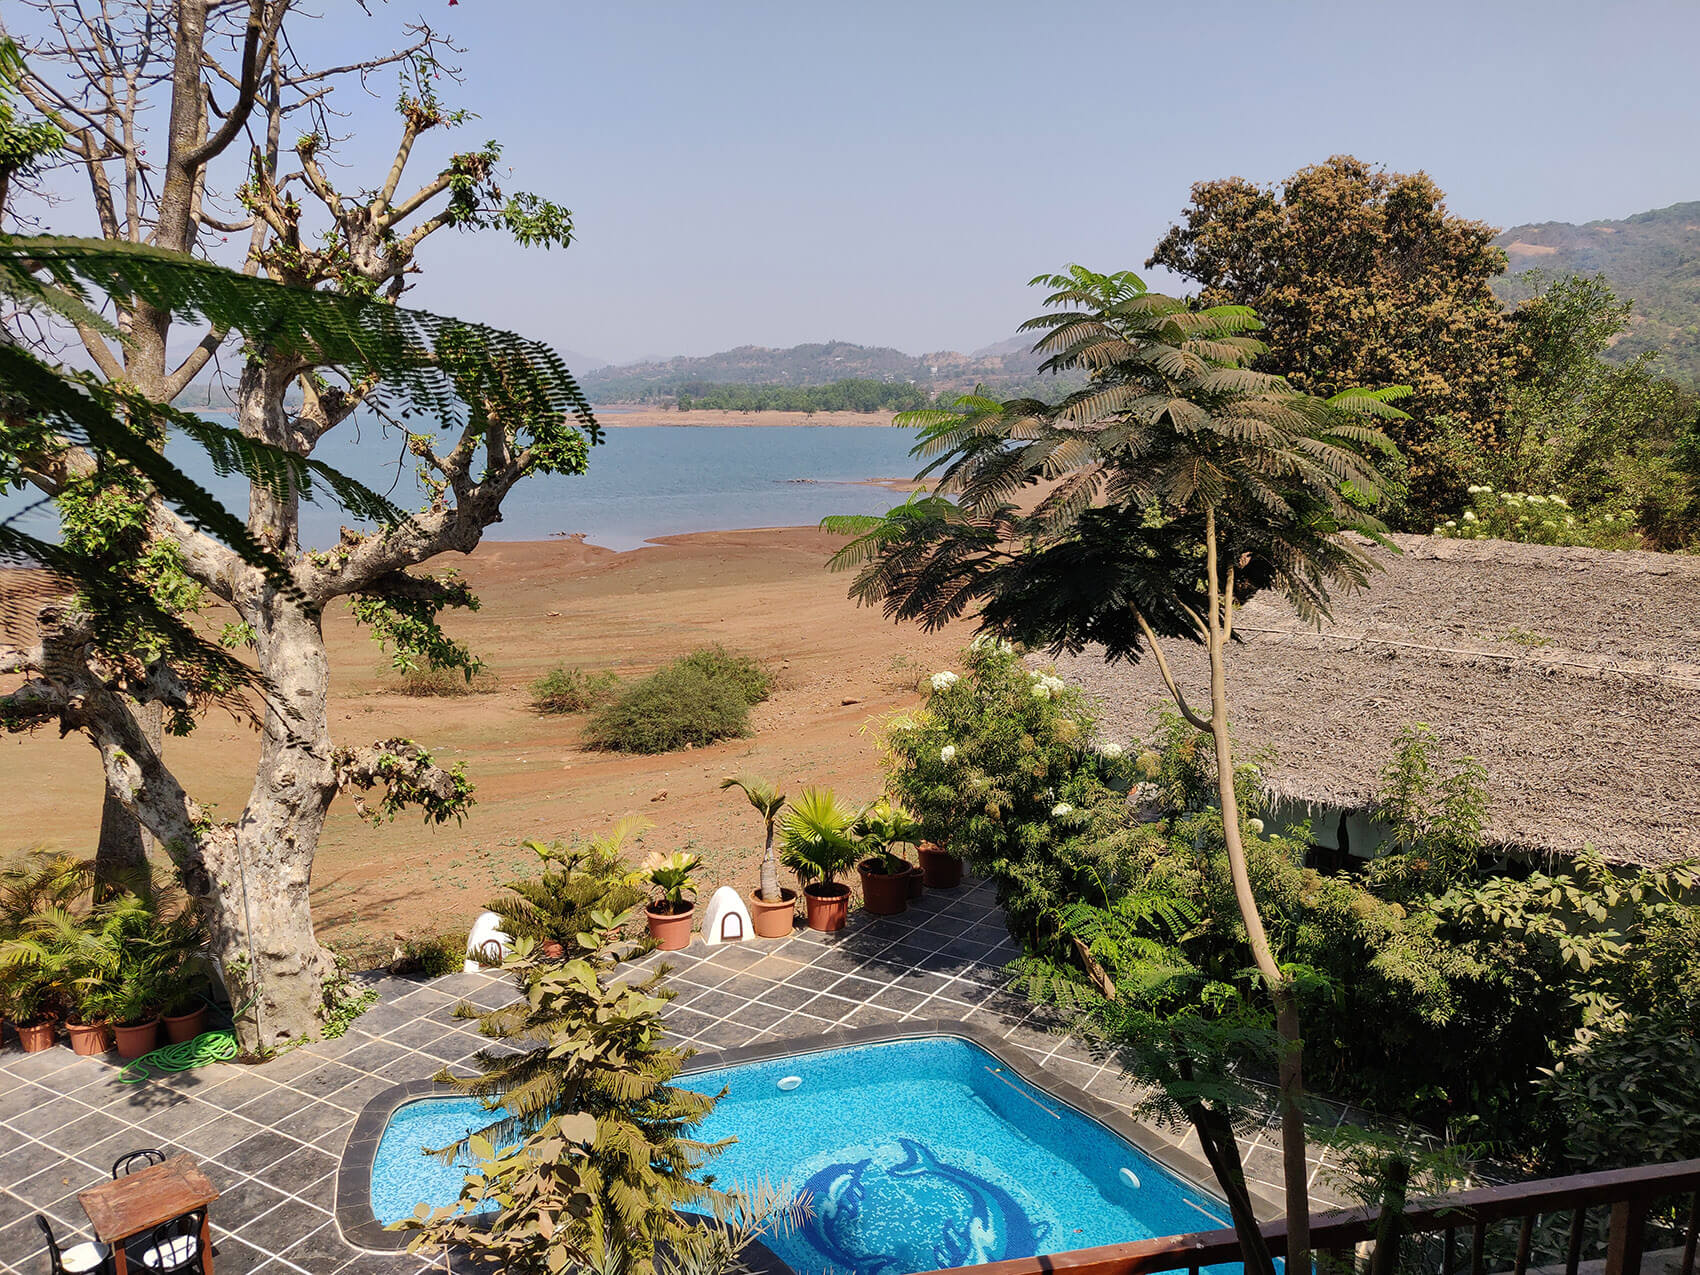 Mulshi Lake View Hotel